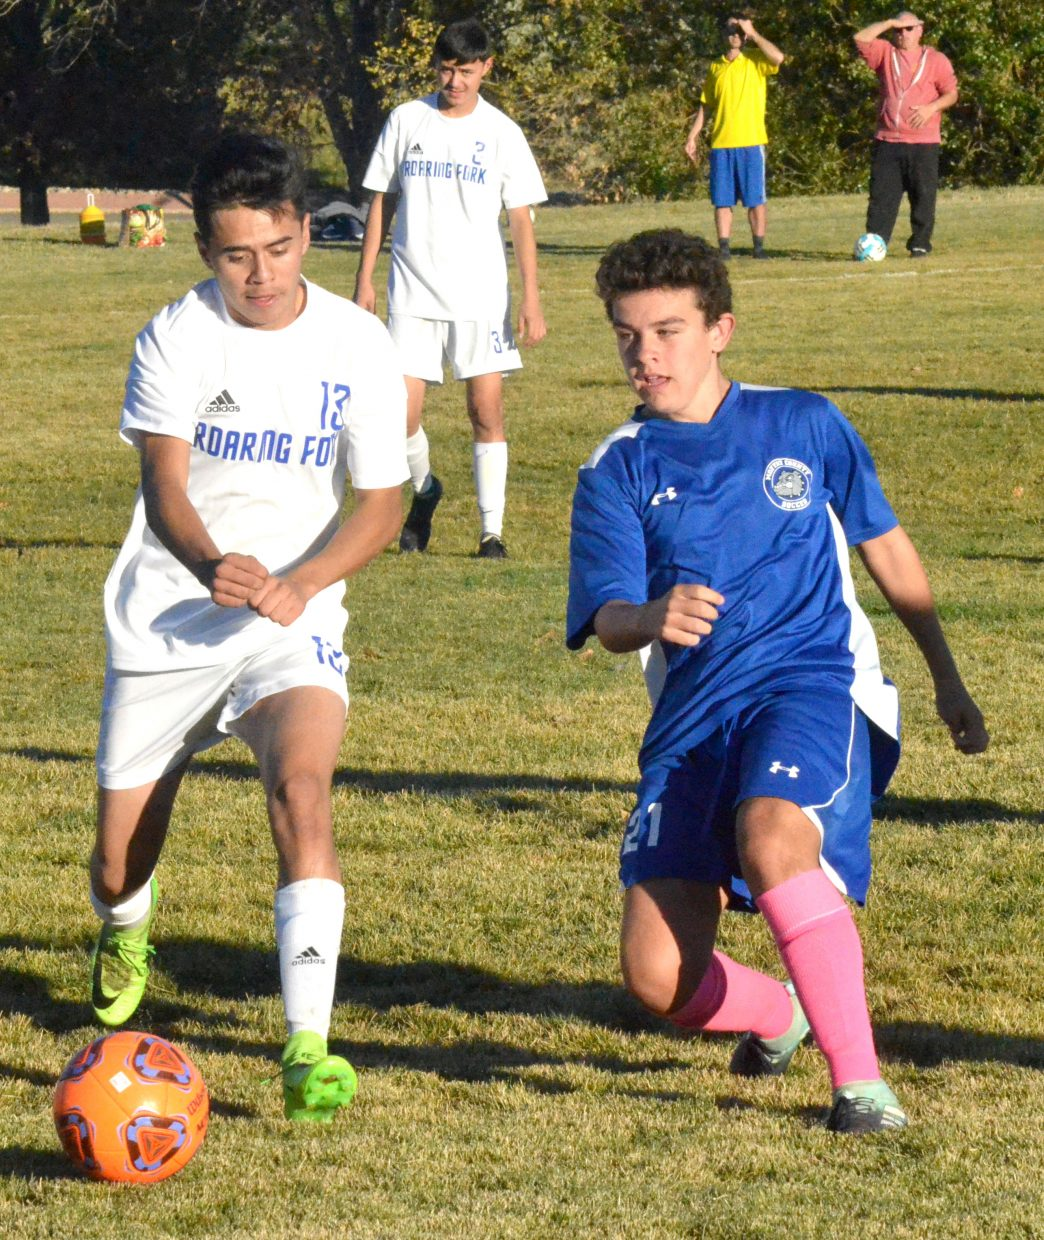 Moffat County High School's Guillermo Estecha boots a pass to teammates downfield.